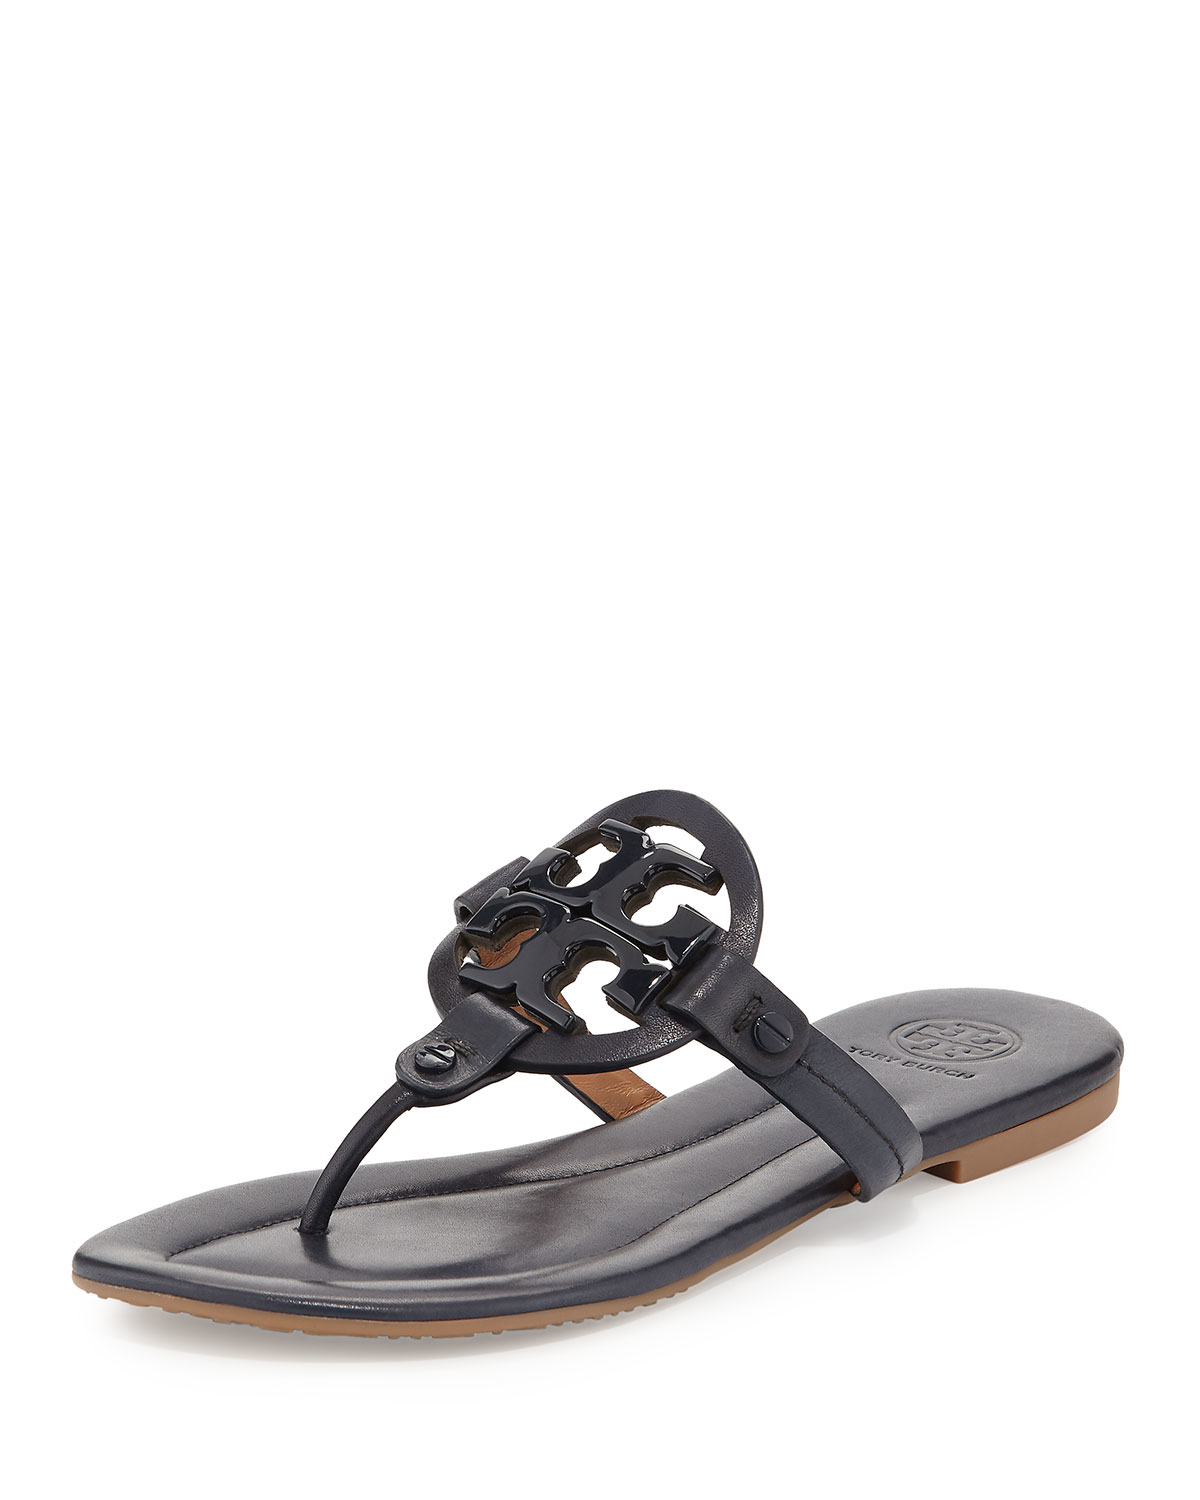 Tory Burch Brown Miller 2 Sandal Outlet Online. Tory Burch's chic Miller sandal is an open back style with a bold logo medallion. US sizing Runs true to size Presented in a Tory Burch box Patent leather upper. Leather lining.